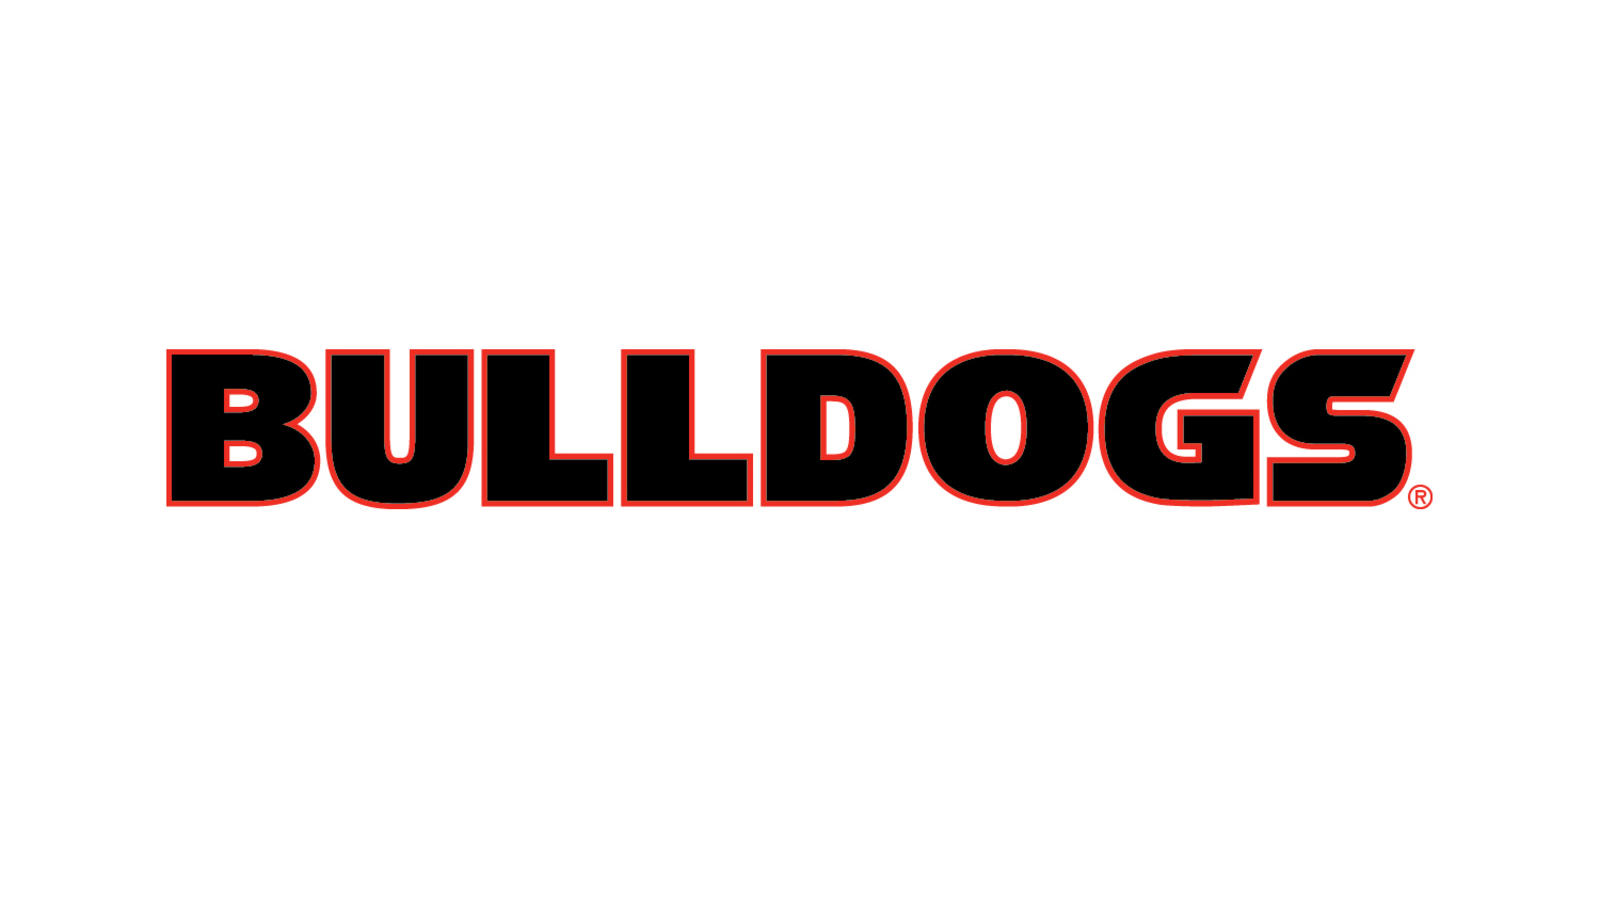 Bulldogs wordmark